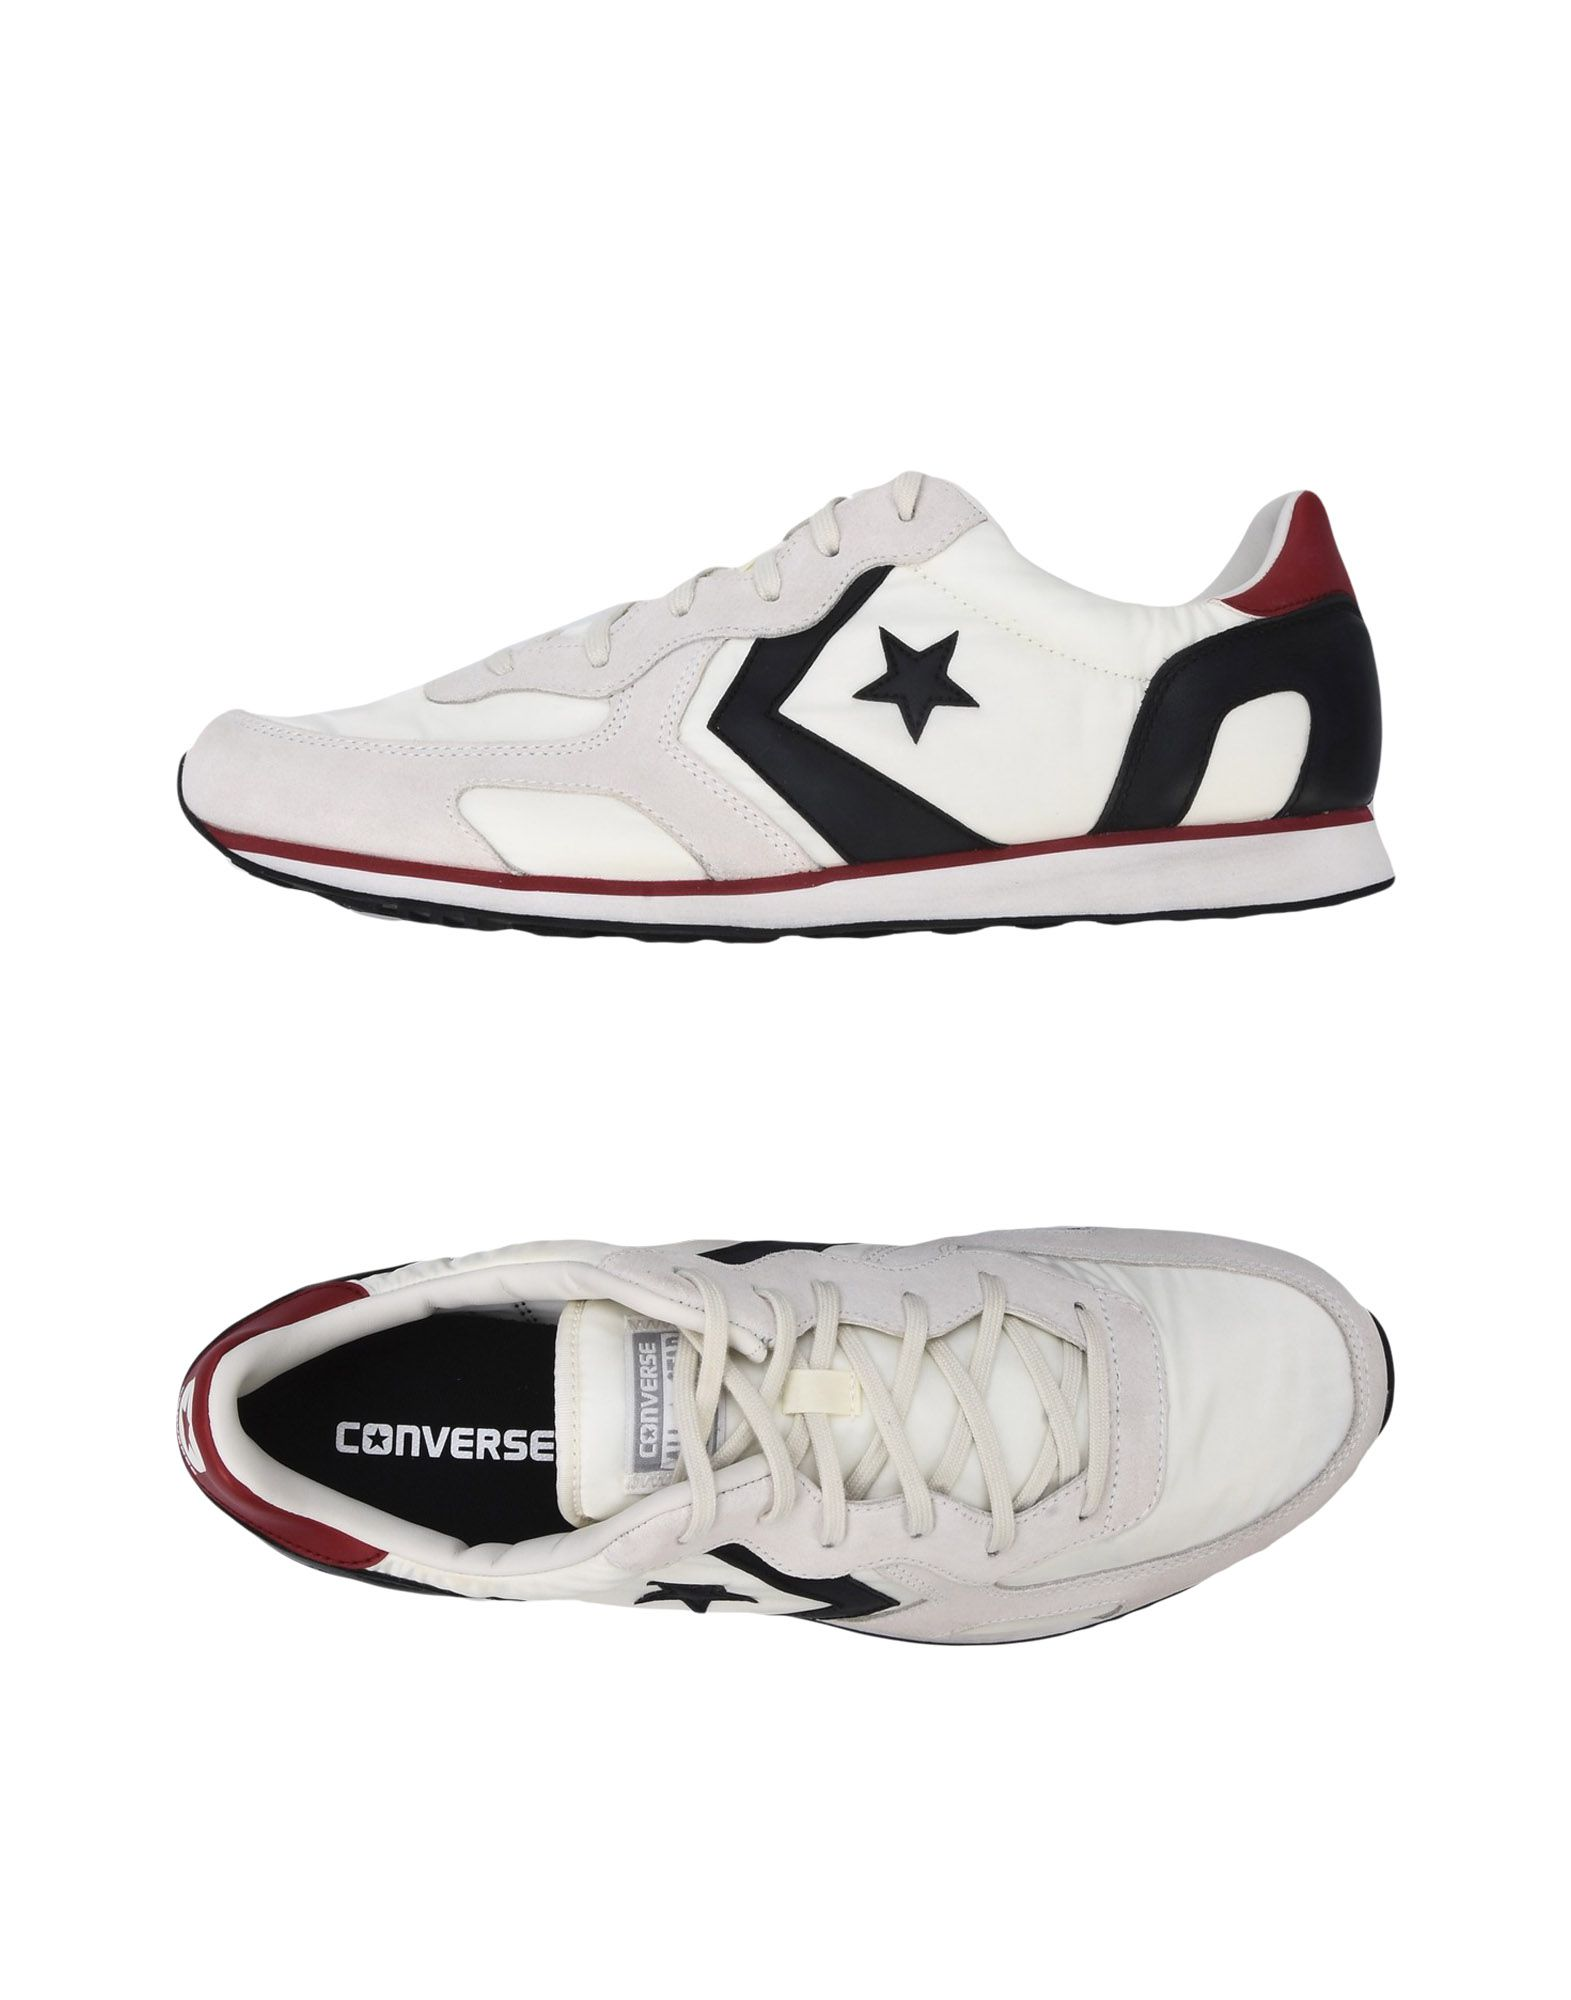 Sneakers Converse Cons Auckland Racer Ox Wrinkle Nylon/Suede Distressed - Uomo - 11216598BM